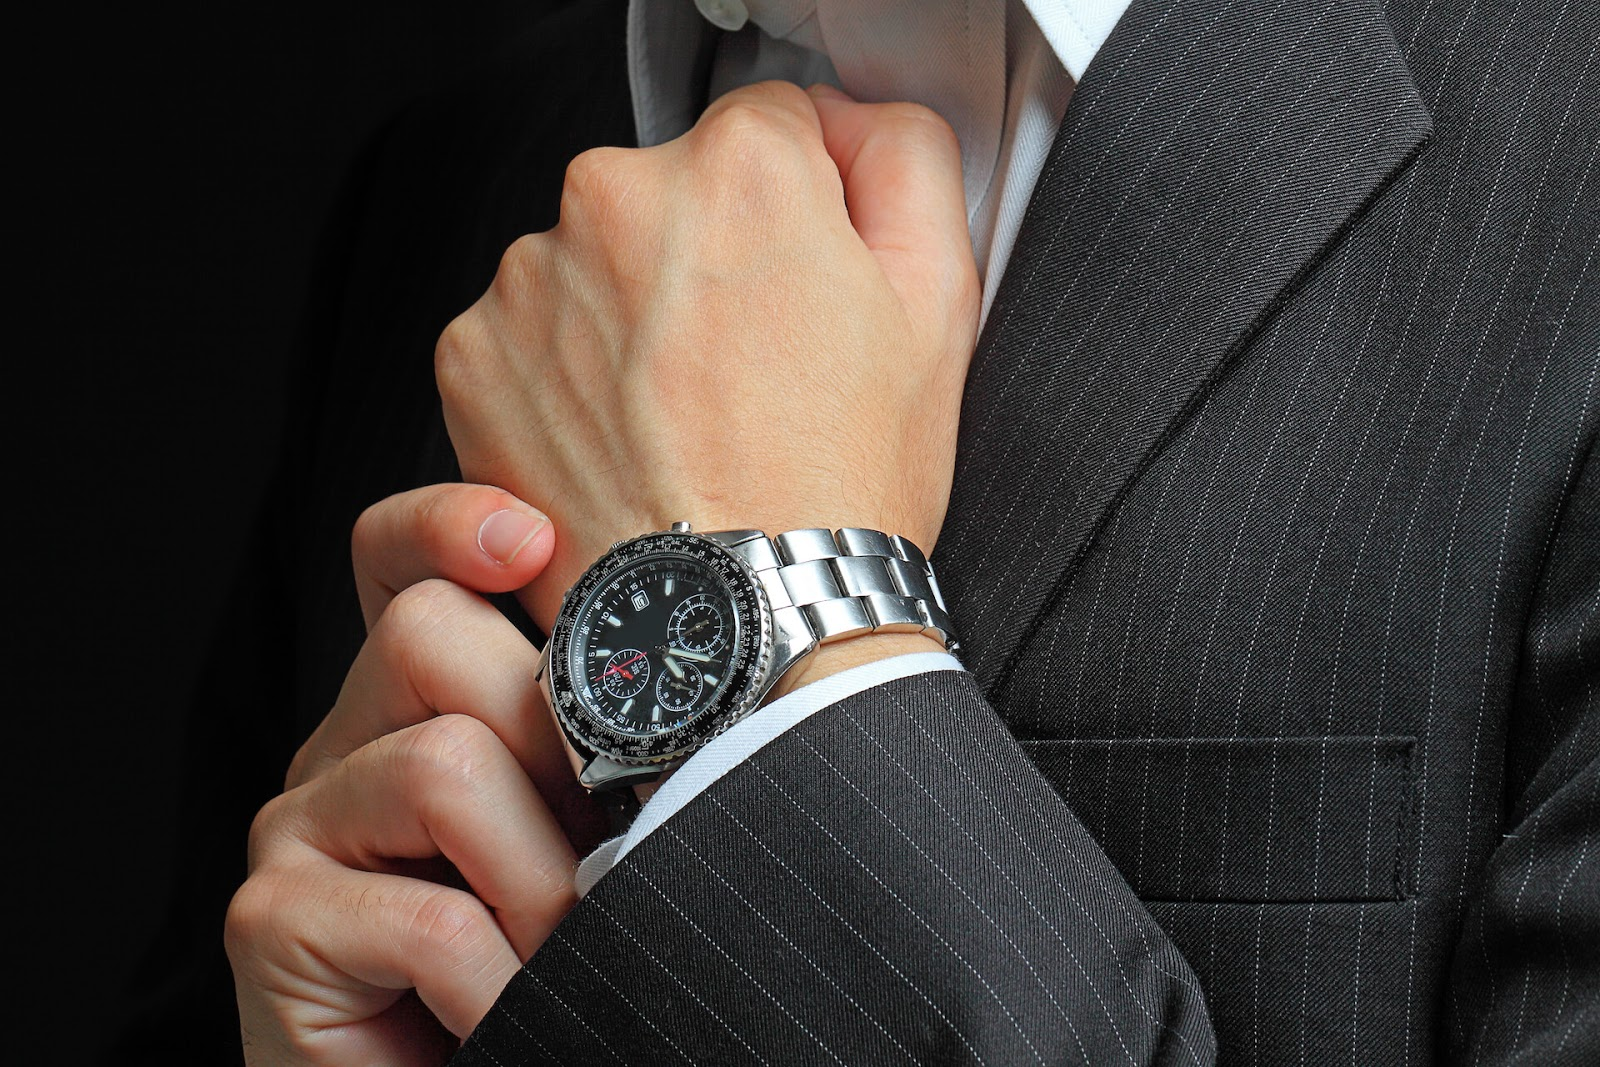 Man with dress watch on his hand